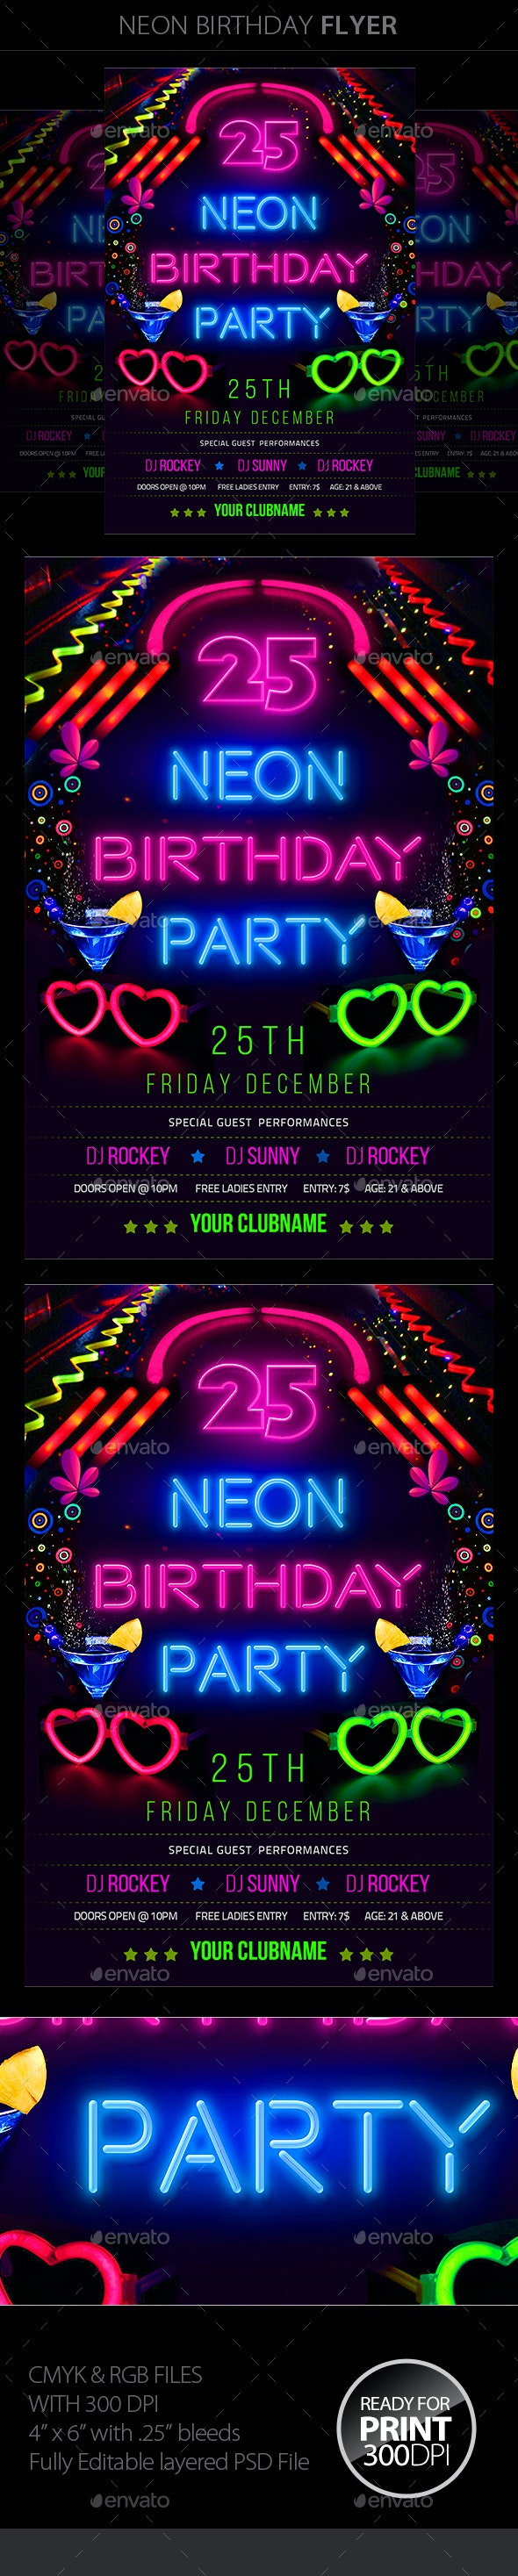 Neon Birthday Party Flyer - Clubs & Parties Events